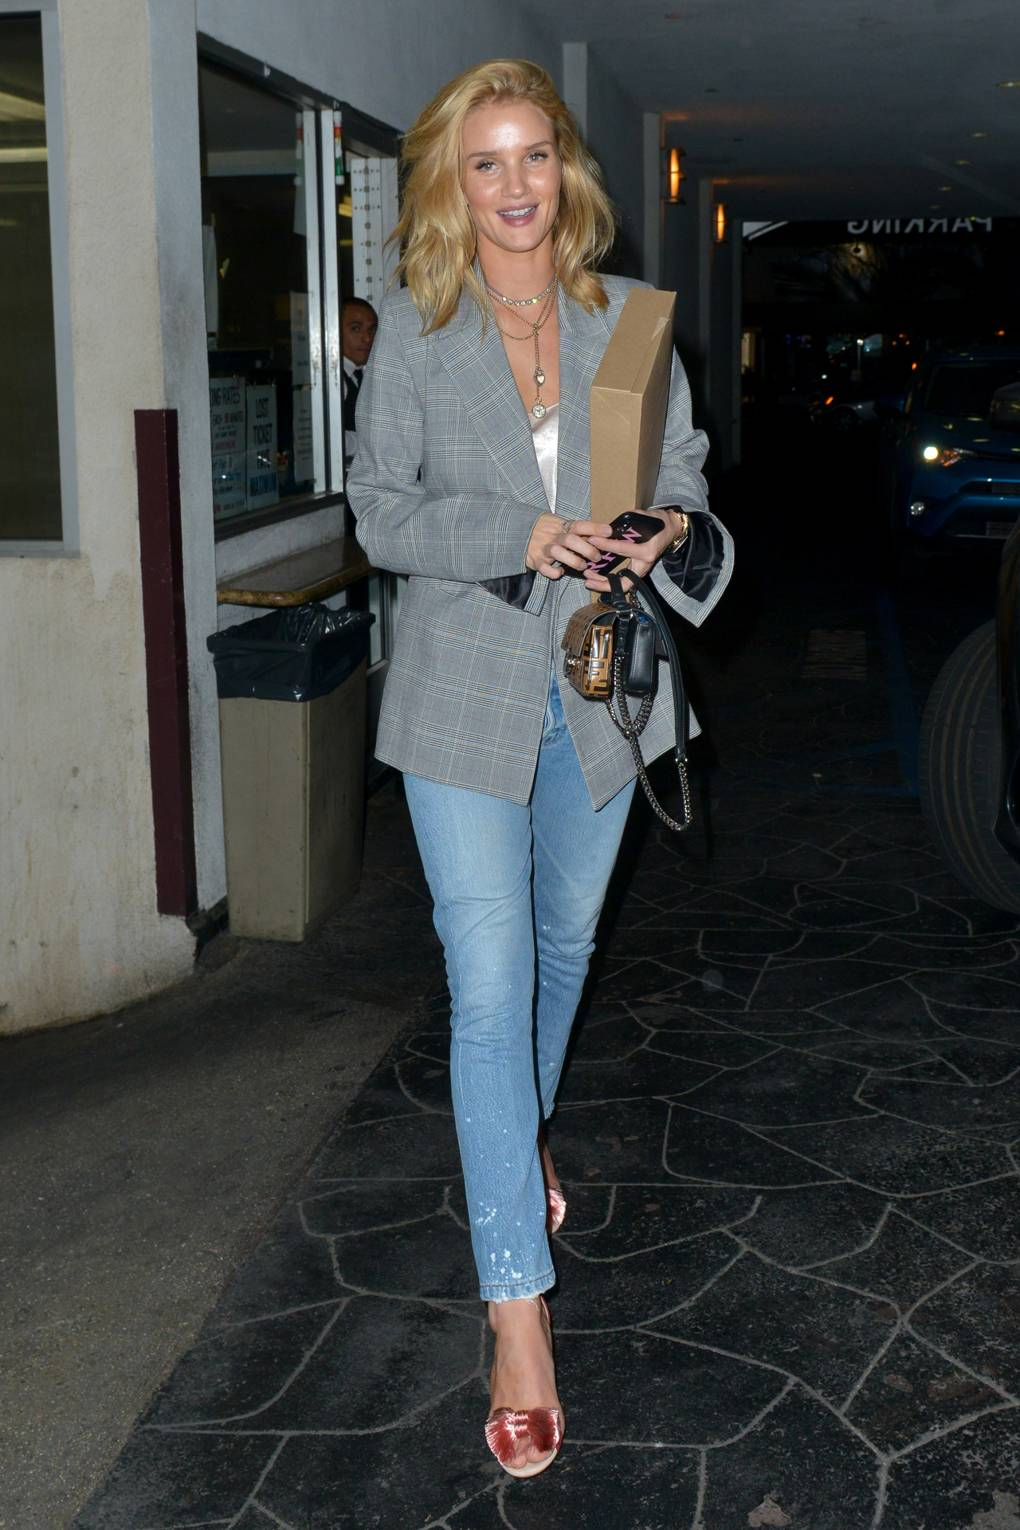 Forum on this topic: This Is What Rosie Huntington-Whiteley Wears on , this-is-what-rosie-huntington-whiteley-wears-on/